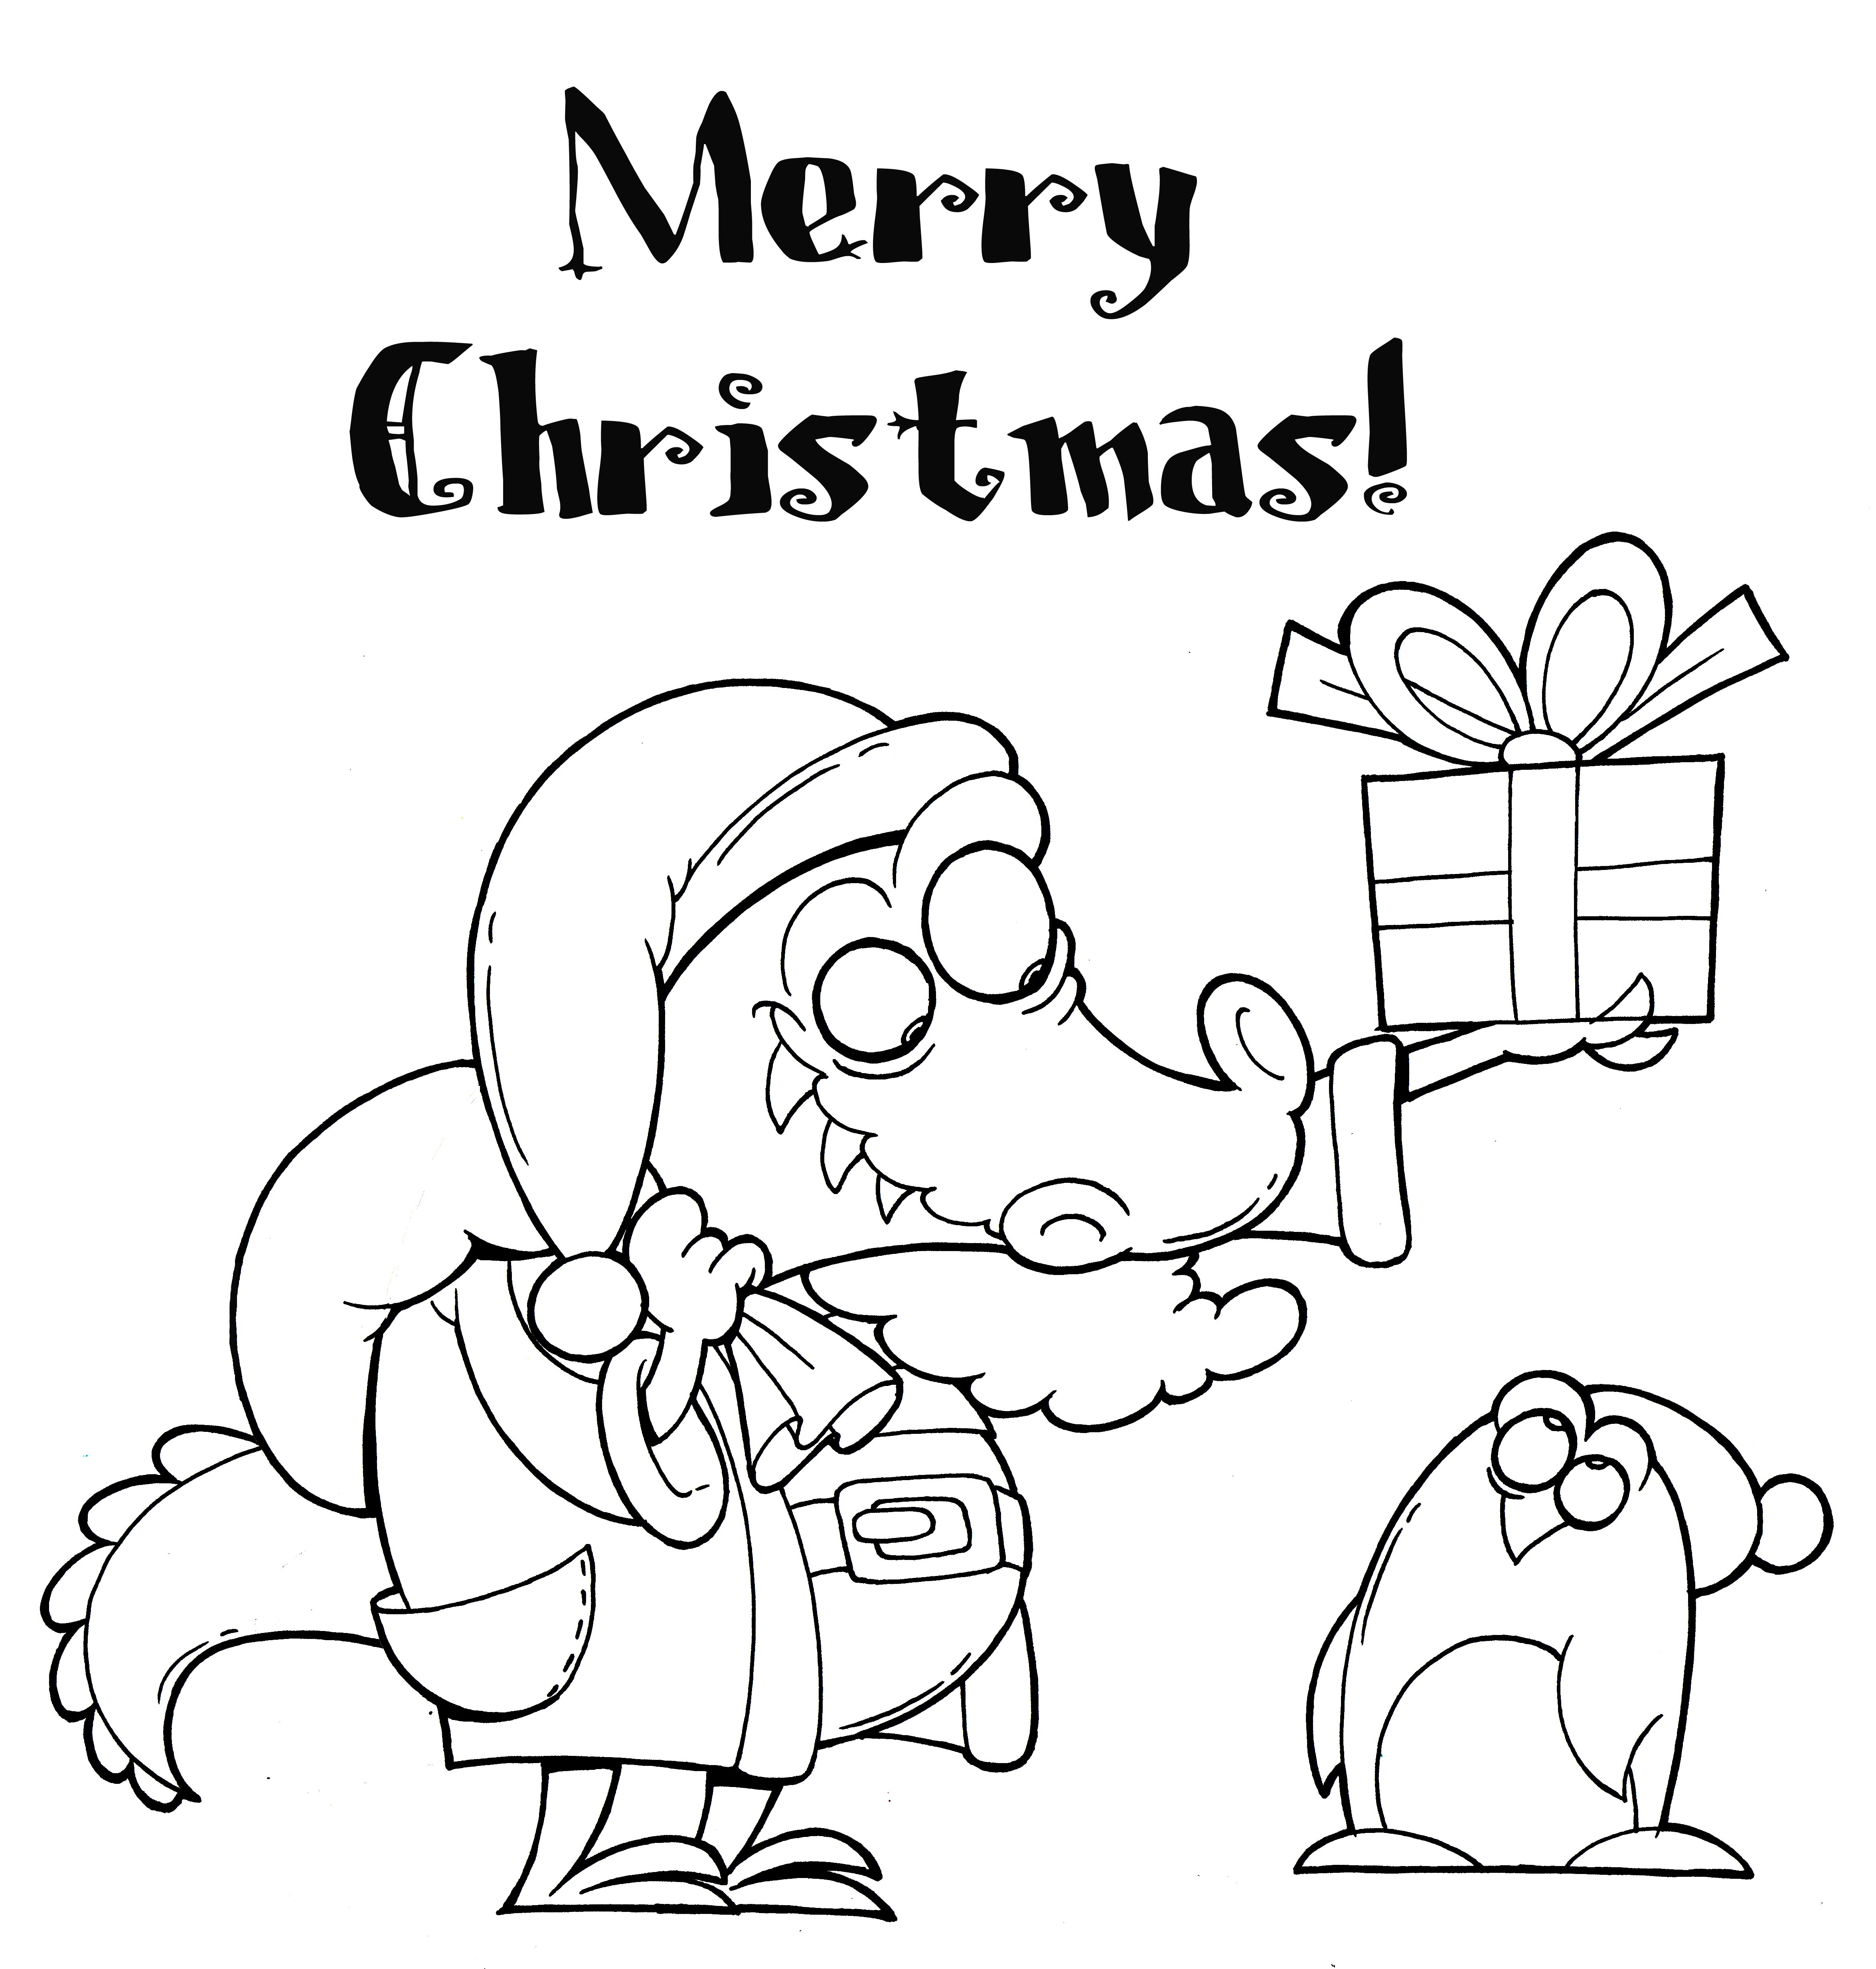 Christmas Crocodile Coloring Page | Coloring Pages